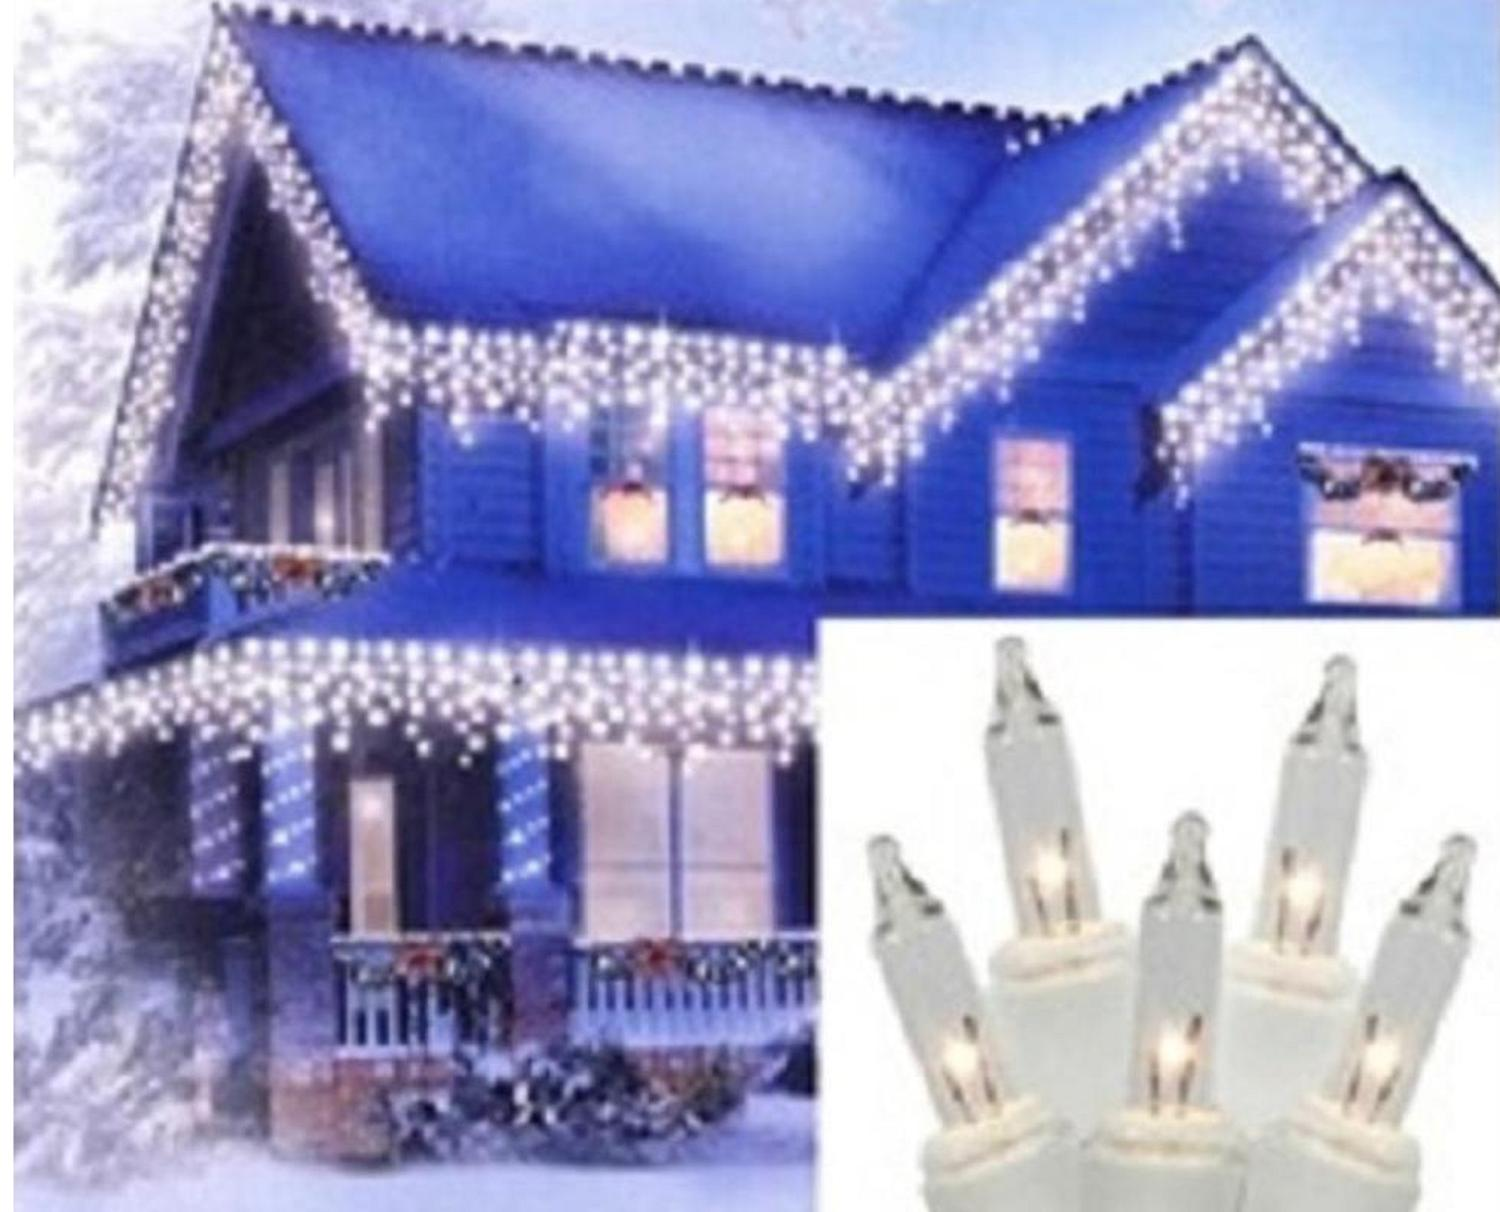 "Set of 300 Heavy Duty Clear Icicle Christmas Lights 3"" Spacing White Wire by Brite Star"